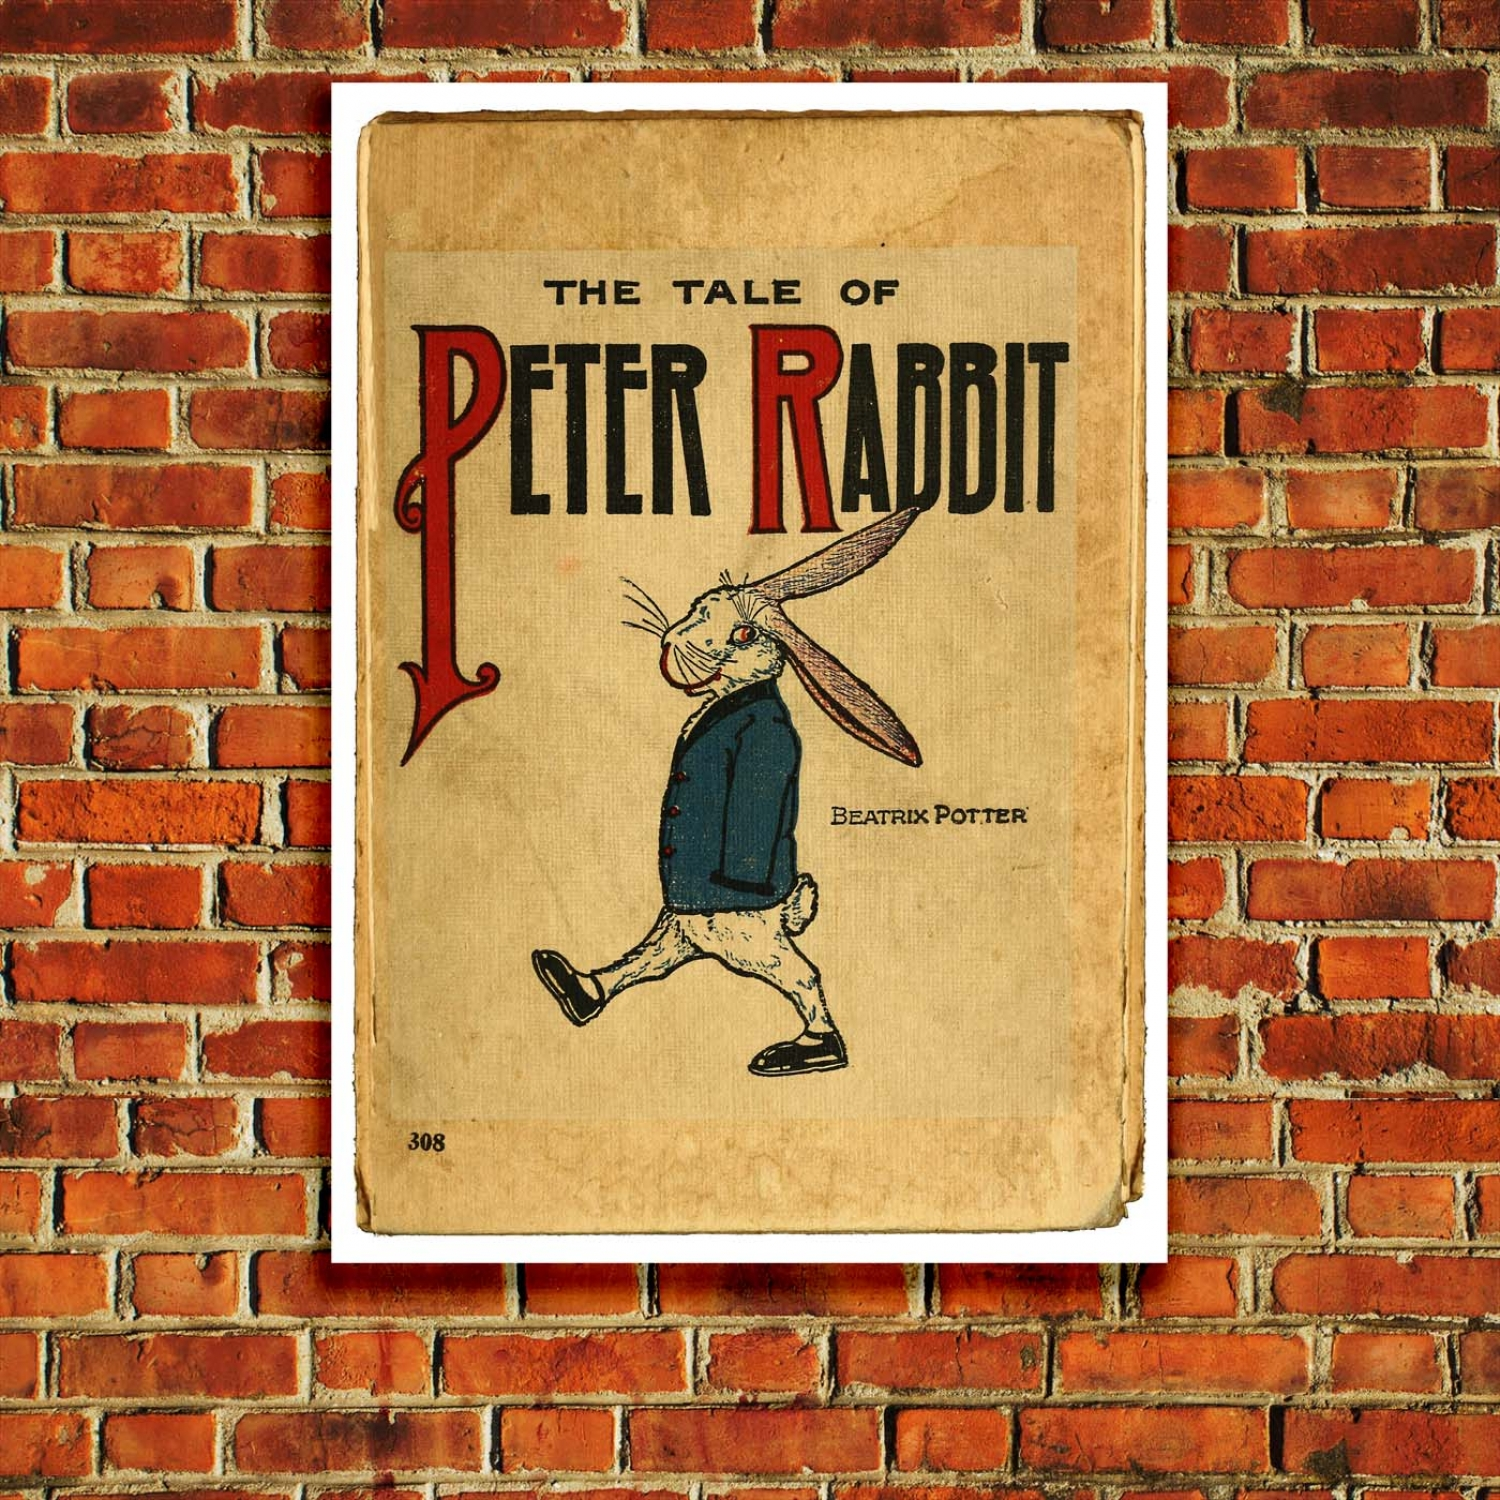 Children S Book Cover Posters : The tale of peter rabbit children s book cover poster